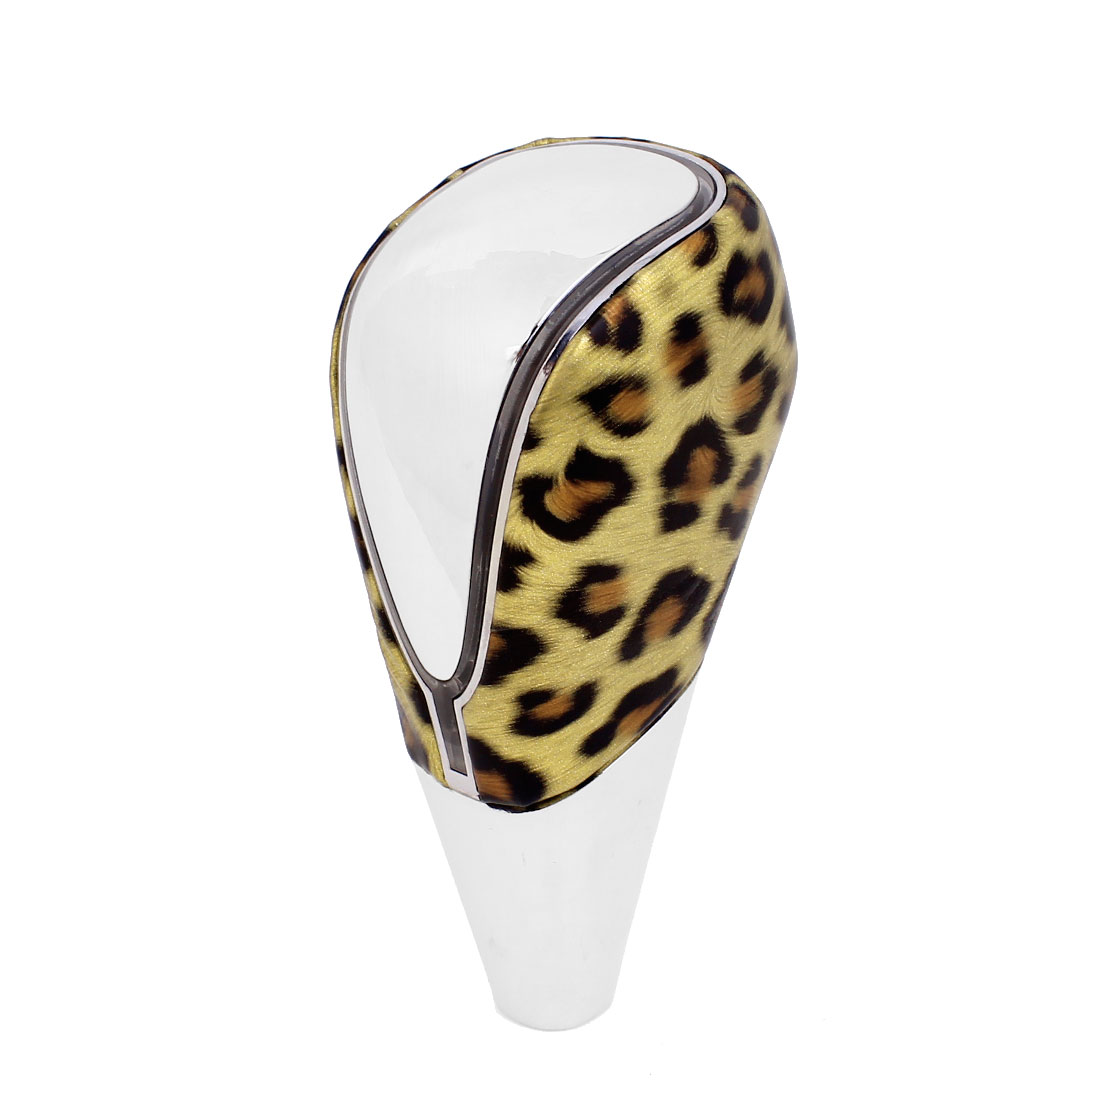 Gold Tone Leopard Print LED Gear Shift Knob Multicolor Light 11cm Height